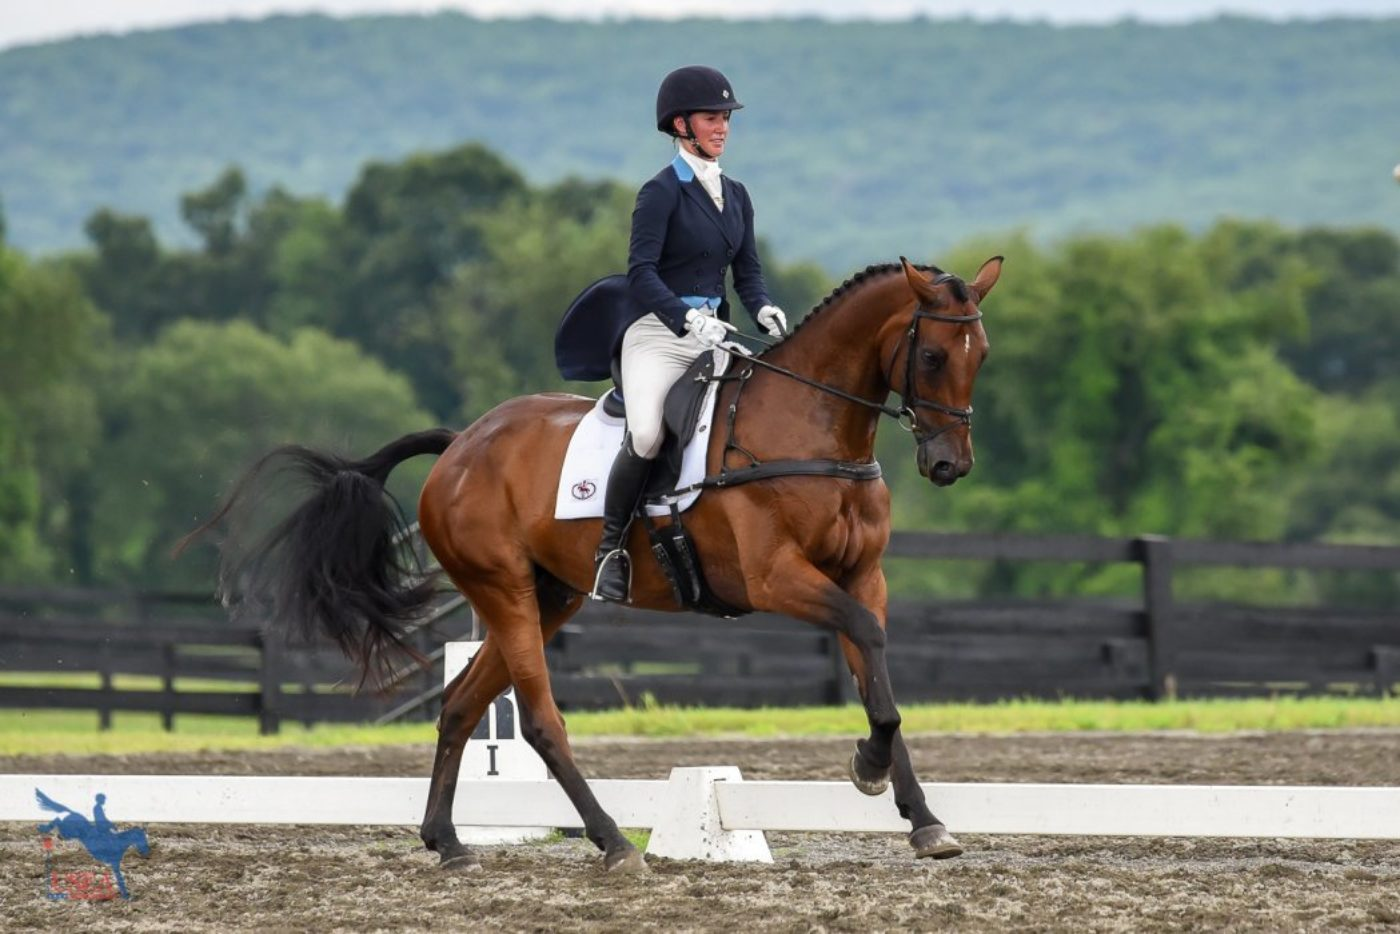 10th - Jenny Caras and Fernhill Full Throttle - 32.1